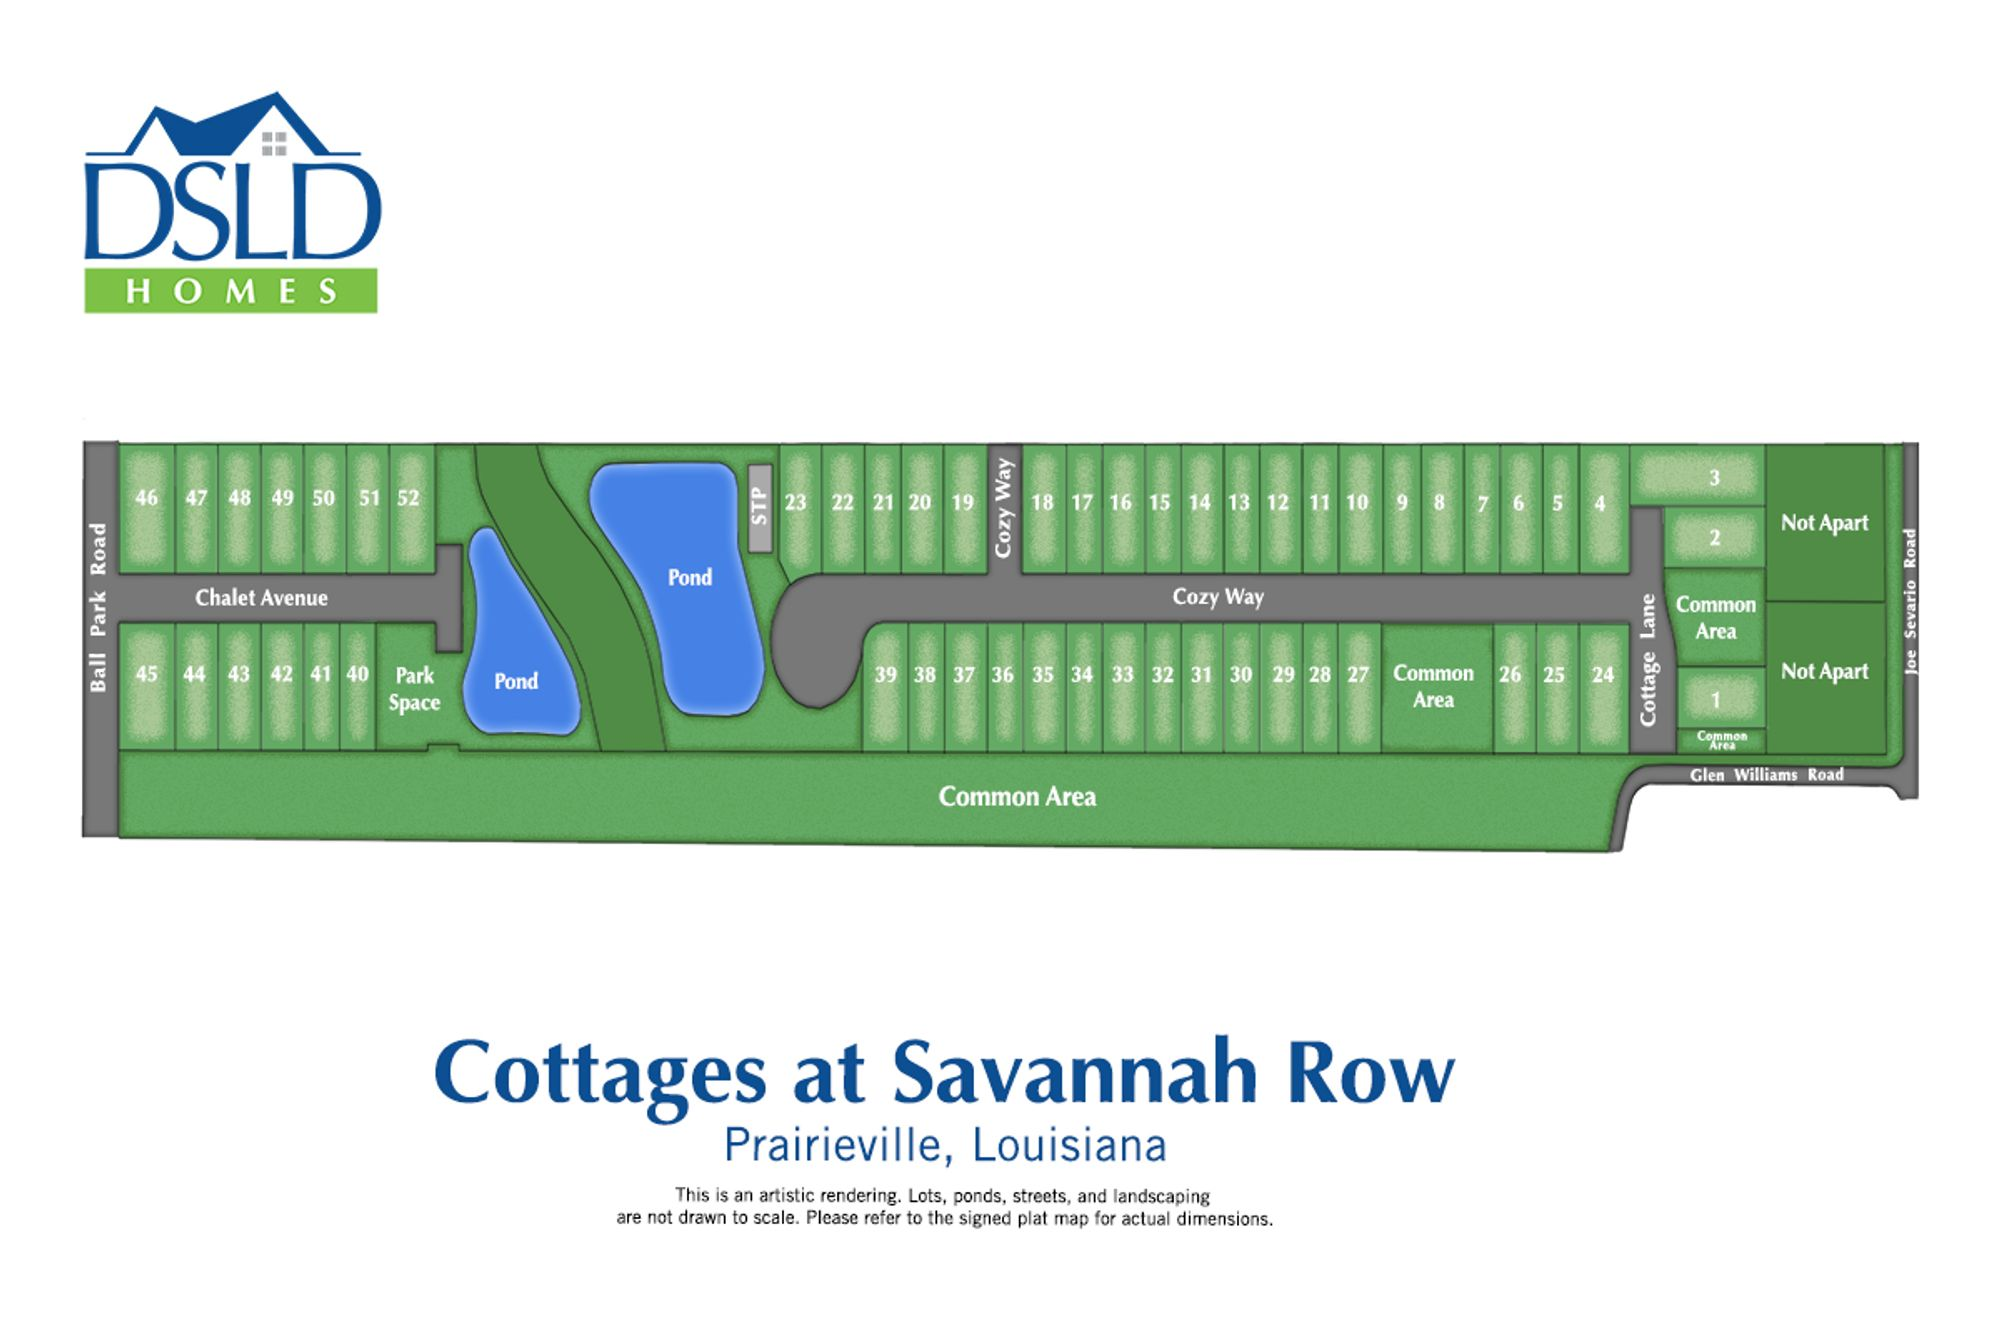 Cottages at Savannah Row